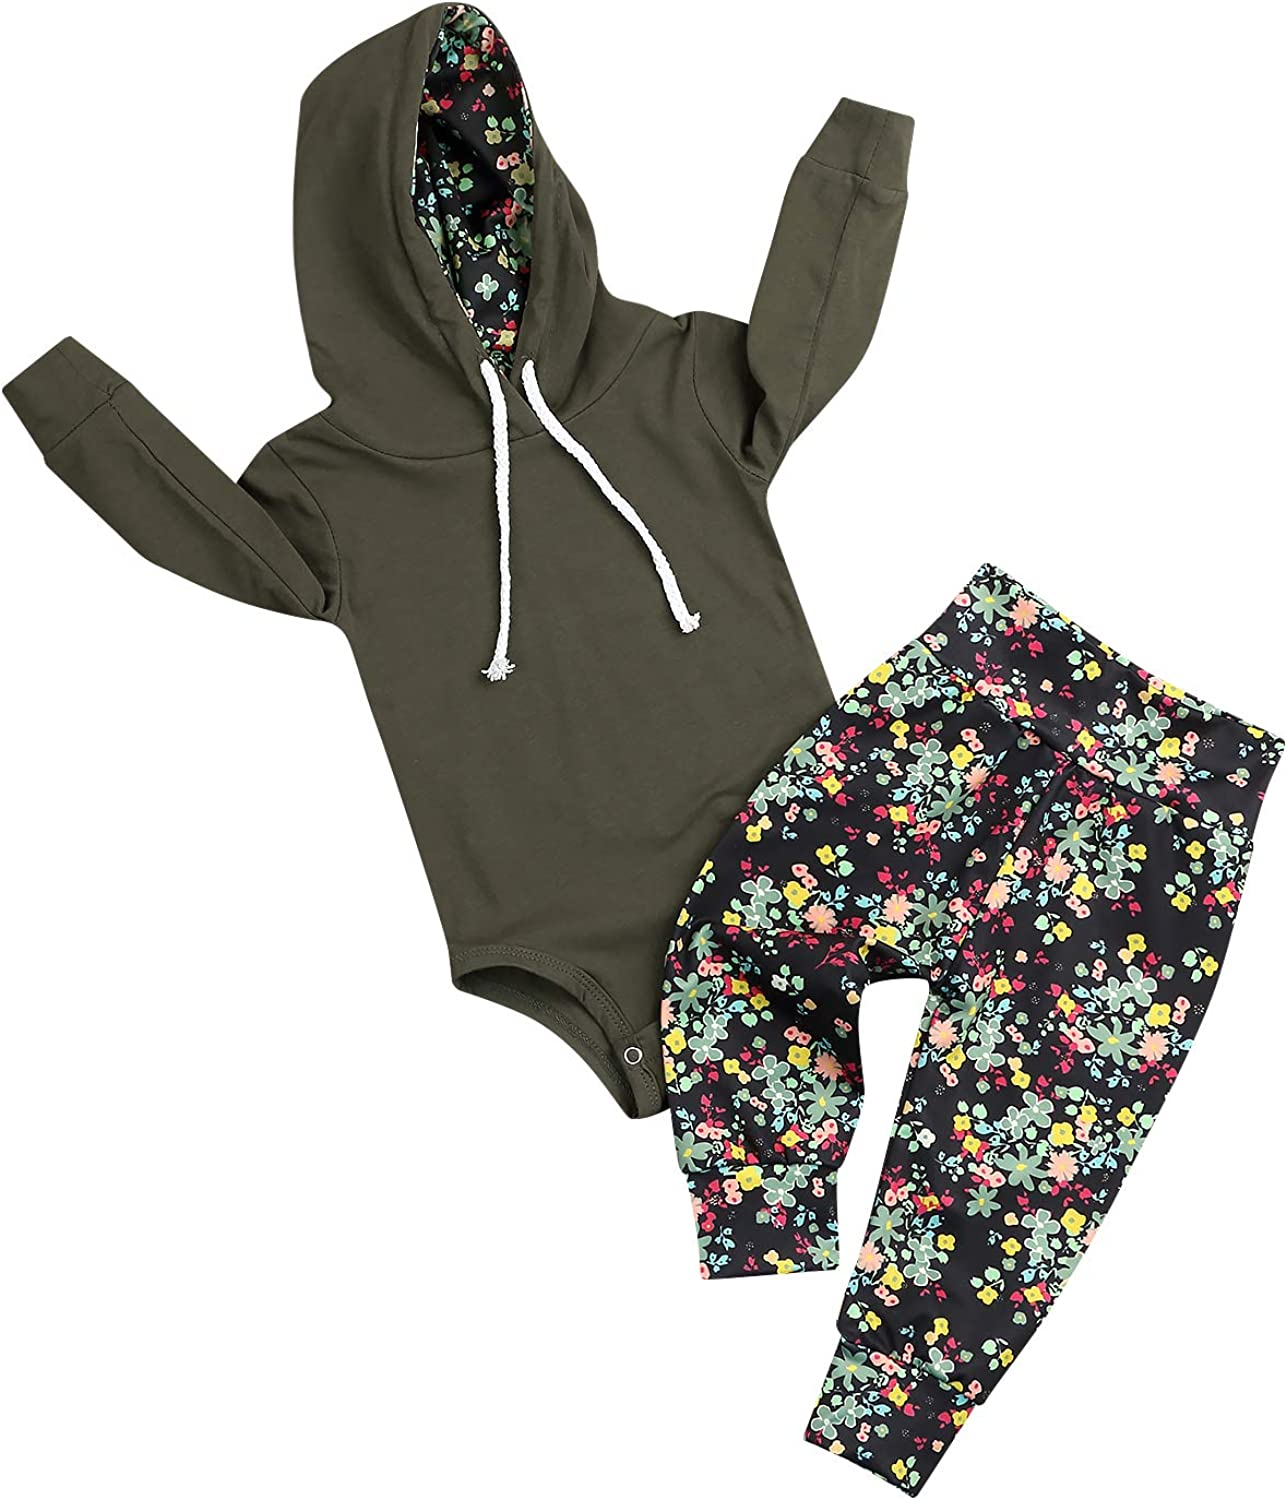 Newborn Baby Girl Outfits Army Green Hoodie Romper Tops Floral Pants Toddler Infant Clothes Set